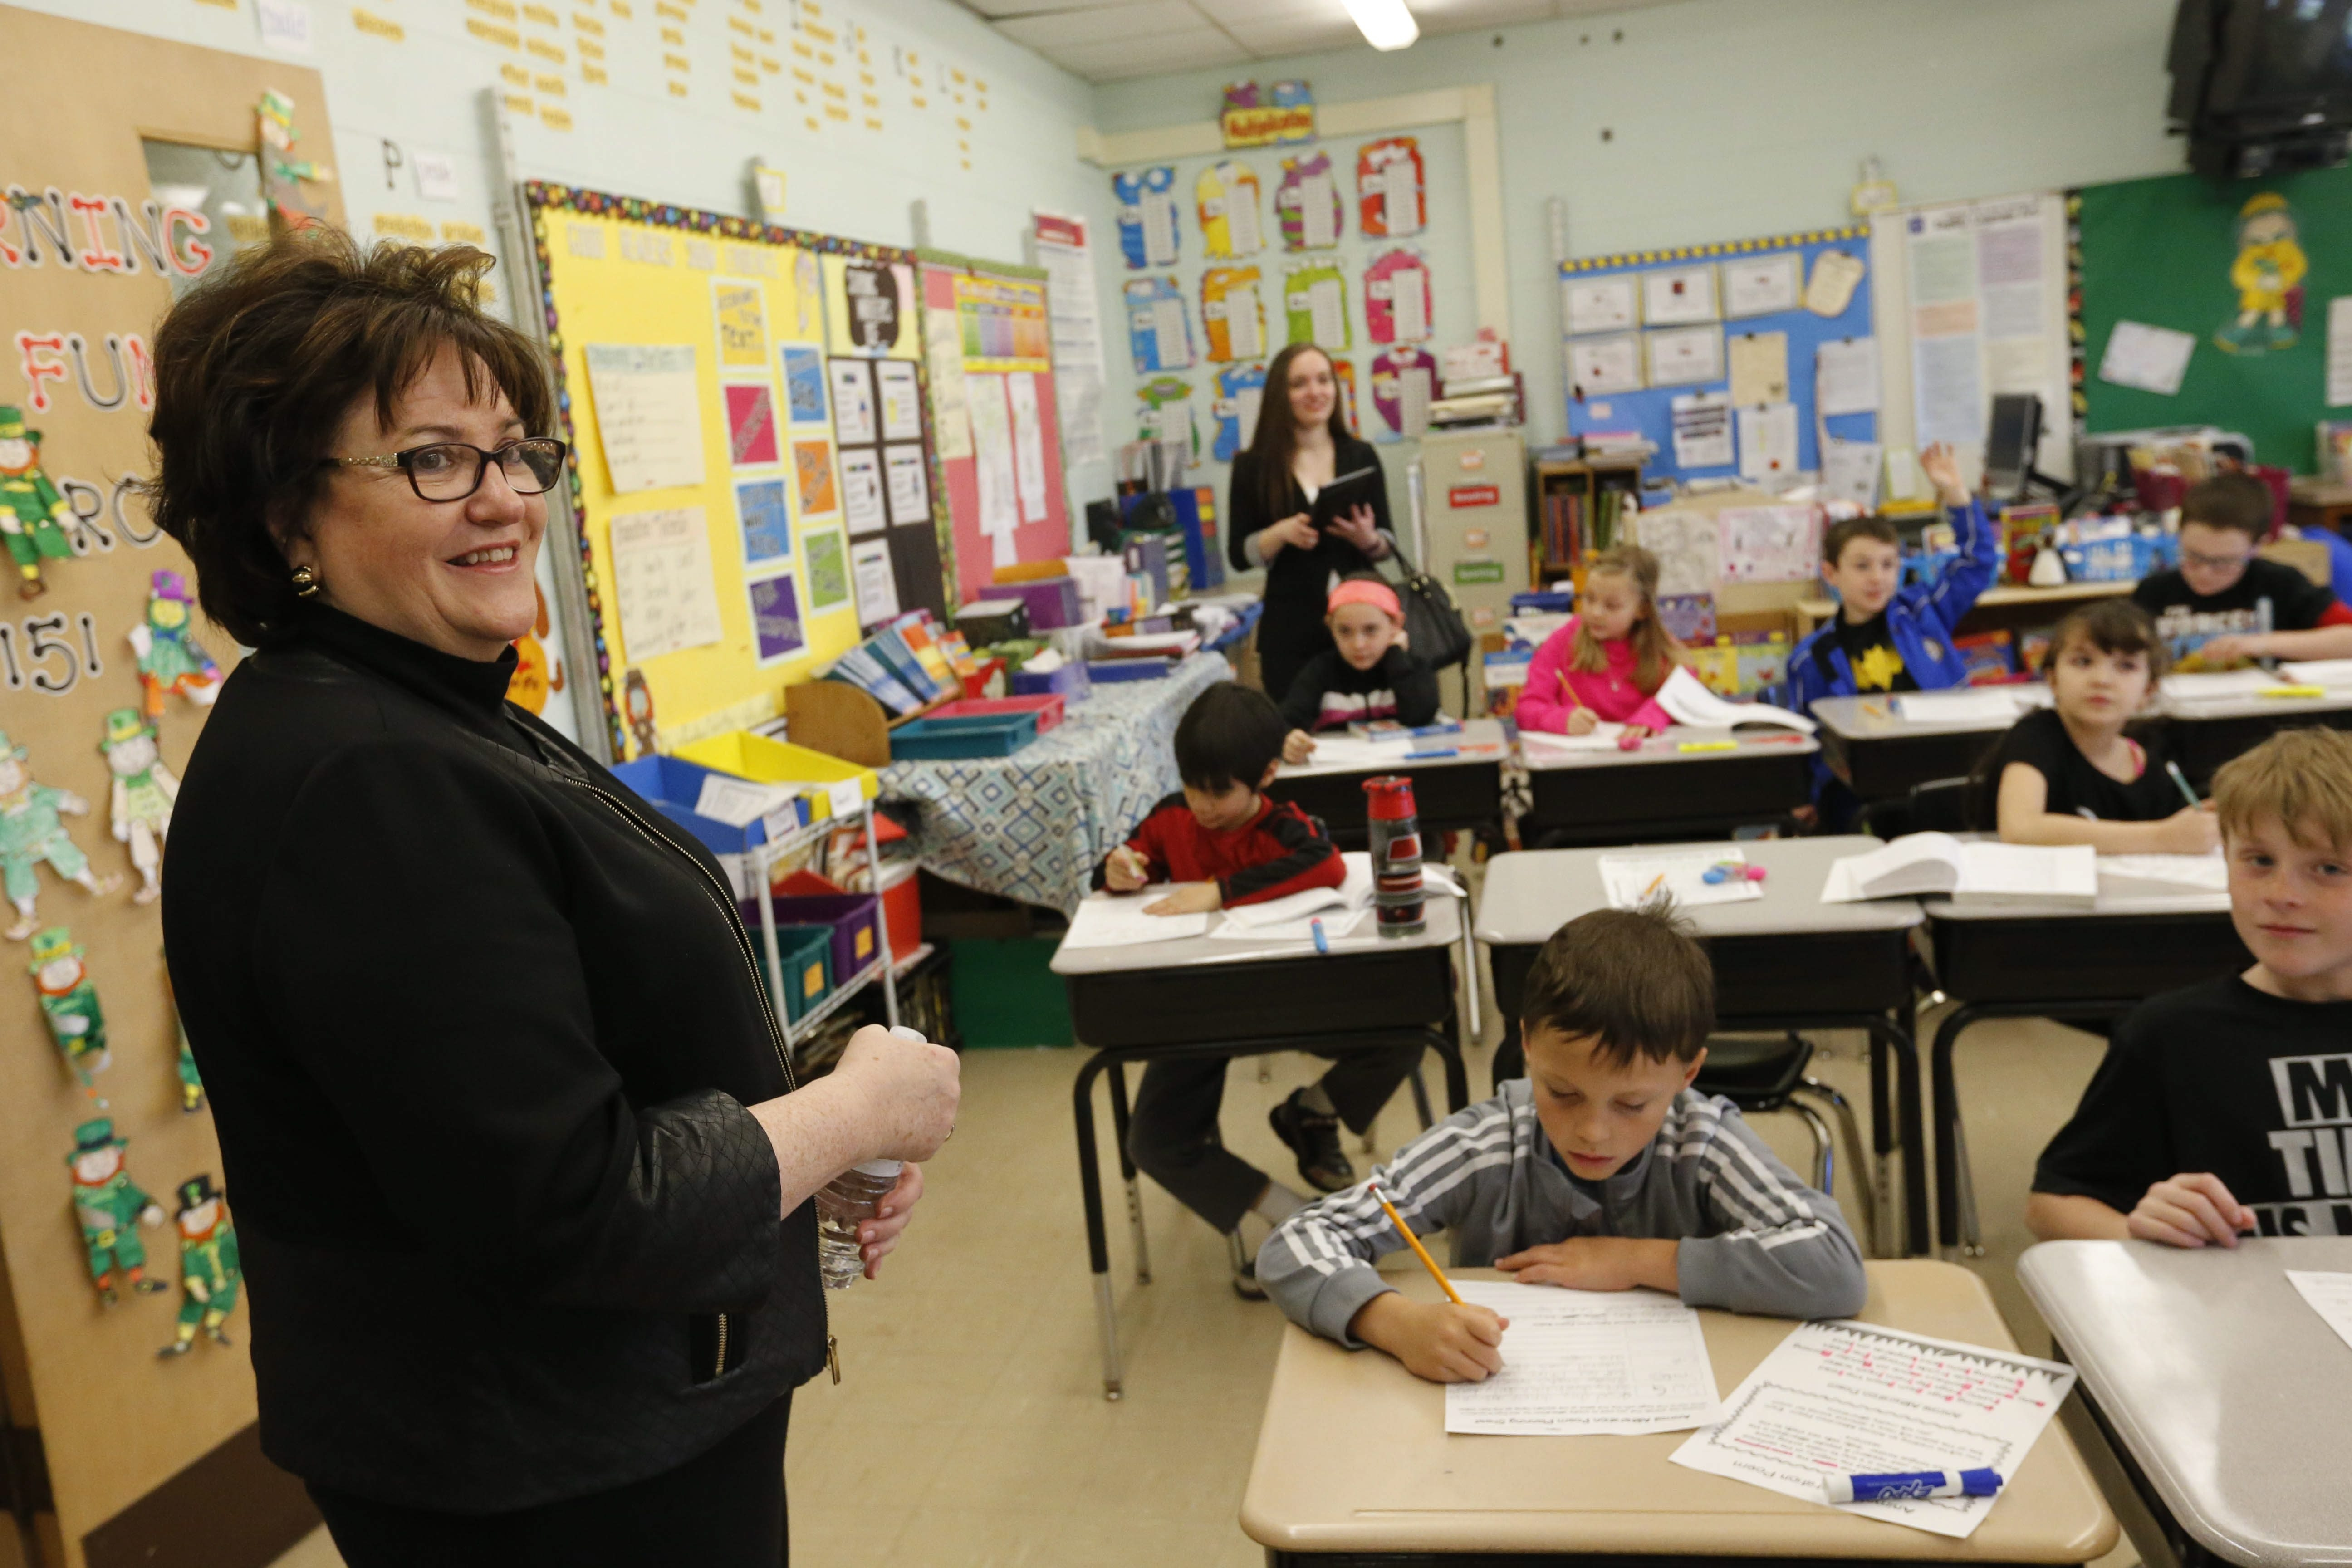 Before state tests next week, Education Commissioner MaryEllen Elia visits Sue Burgio's class Wednesday at Allendale Elementary School in the West Seneca district, where parent opposition and the student opt-out rate have been high. See a photo gallery at buffalonews.com.